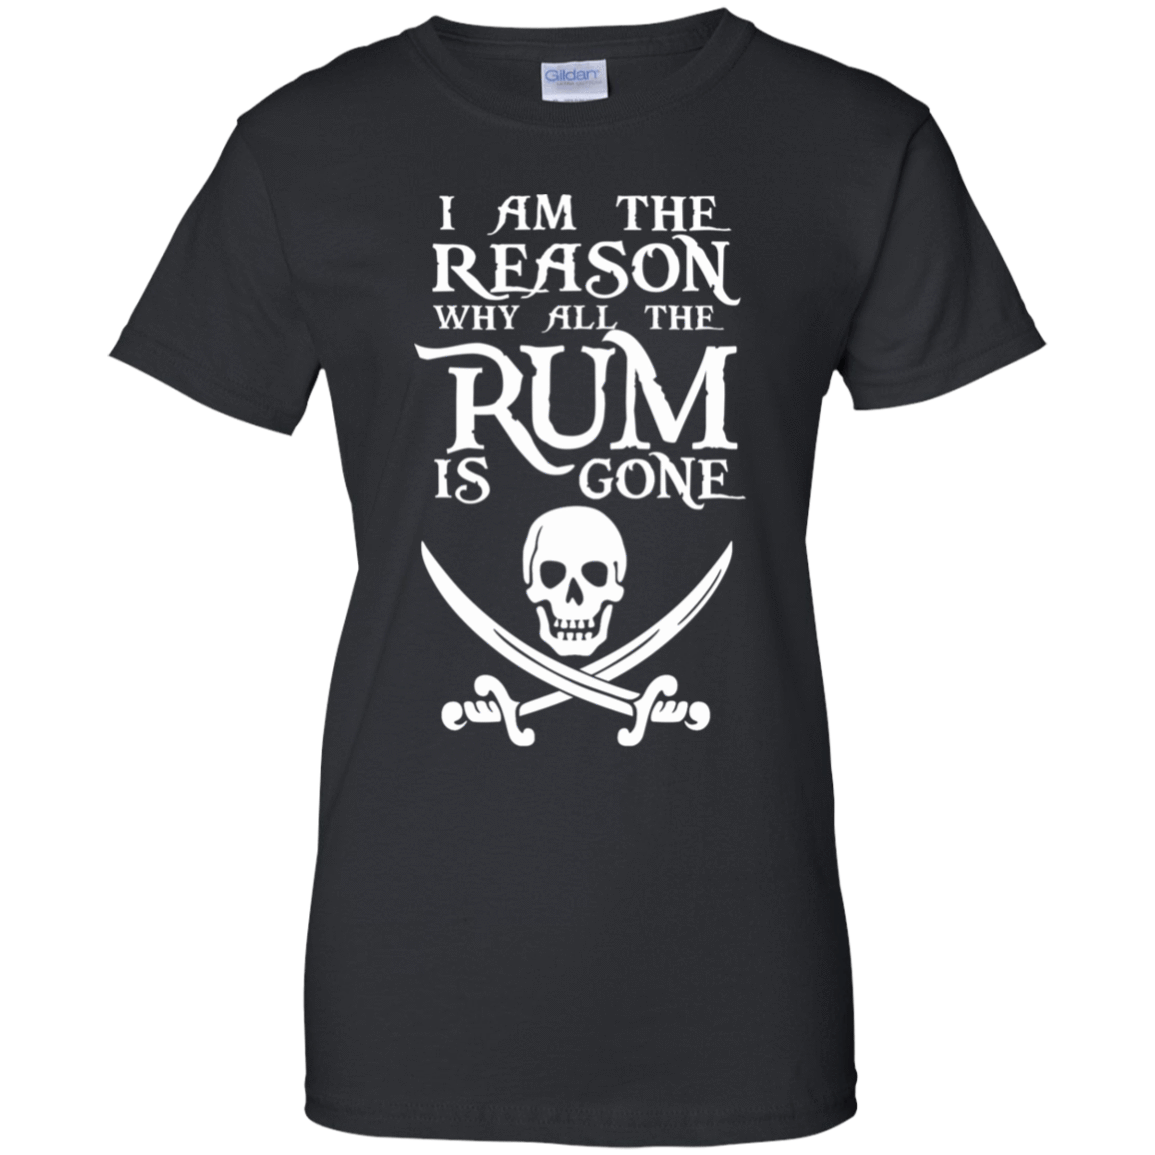 I Am The Reason Why All The Rum Is Gone 939-9248-73425466-44695 - Tee Ript